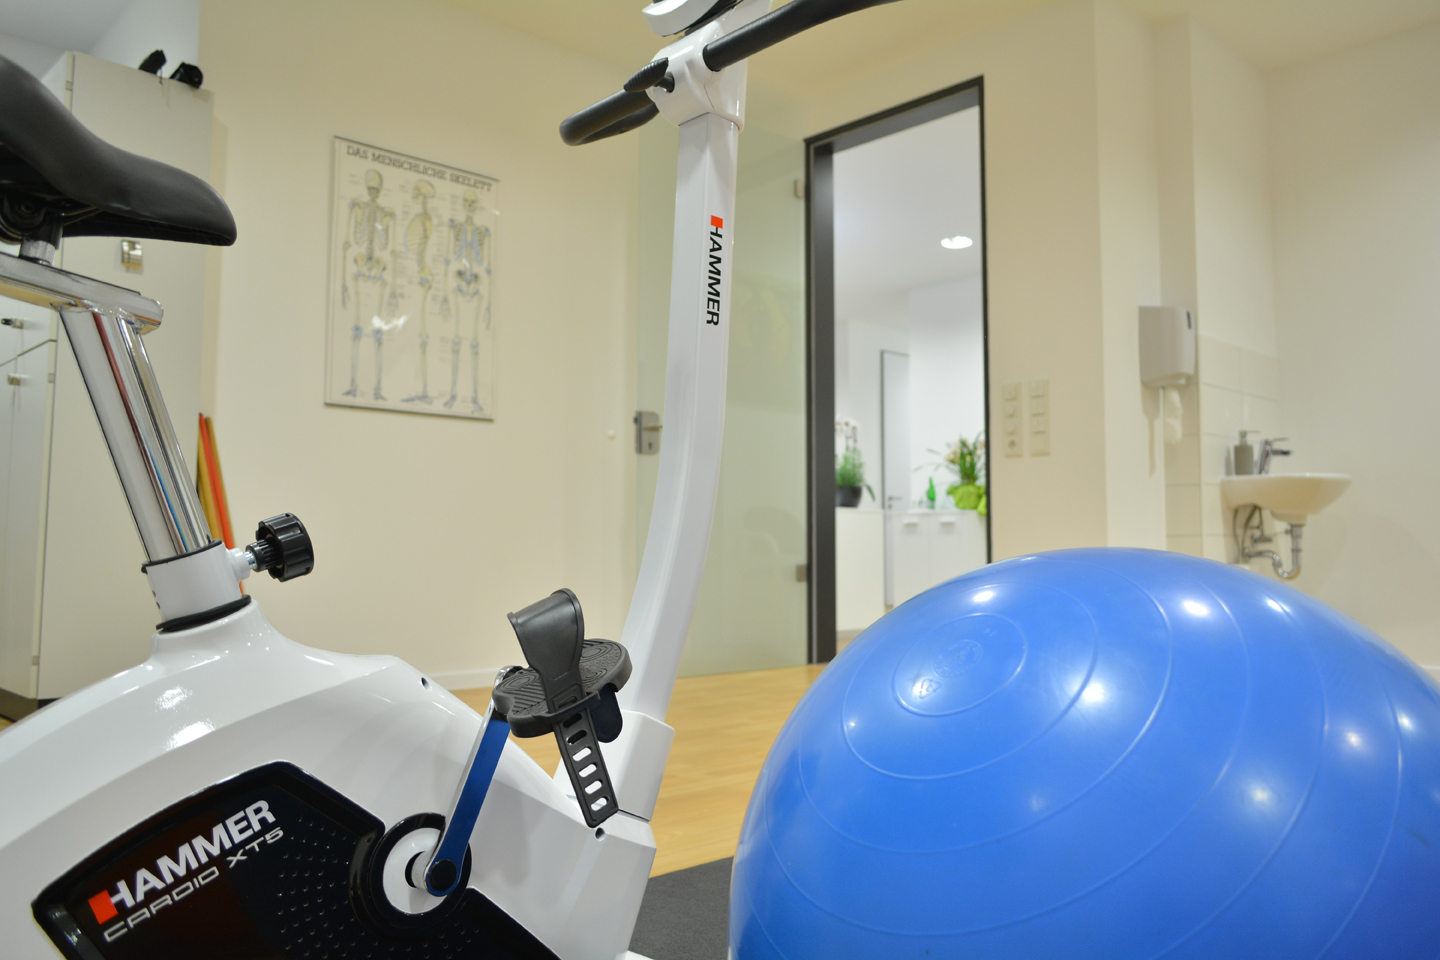 Sportgeräte in der Physiotherapie in Herford